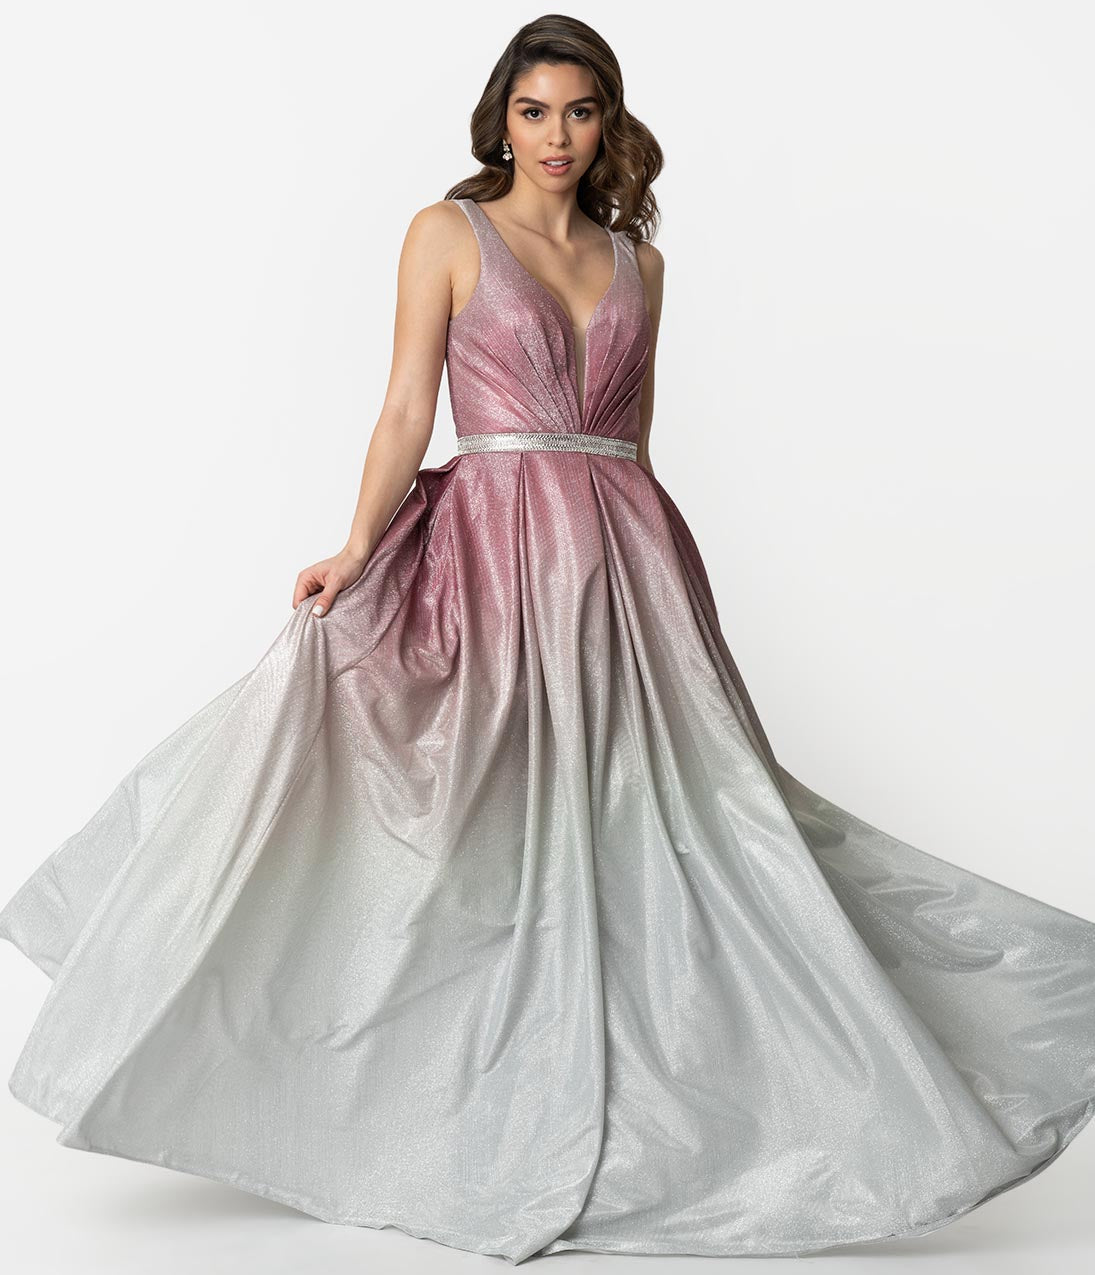 1950s Prom Dresses, Formal Dresses and Party Dresses Rouge  Silver Ombre Sparkle Sleeveless Ball Gown $268.00 AT vintagedancer.com